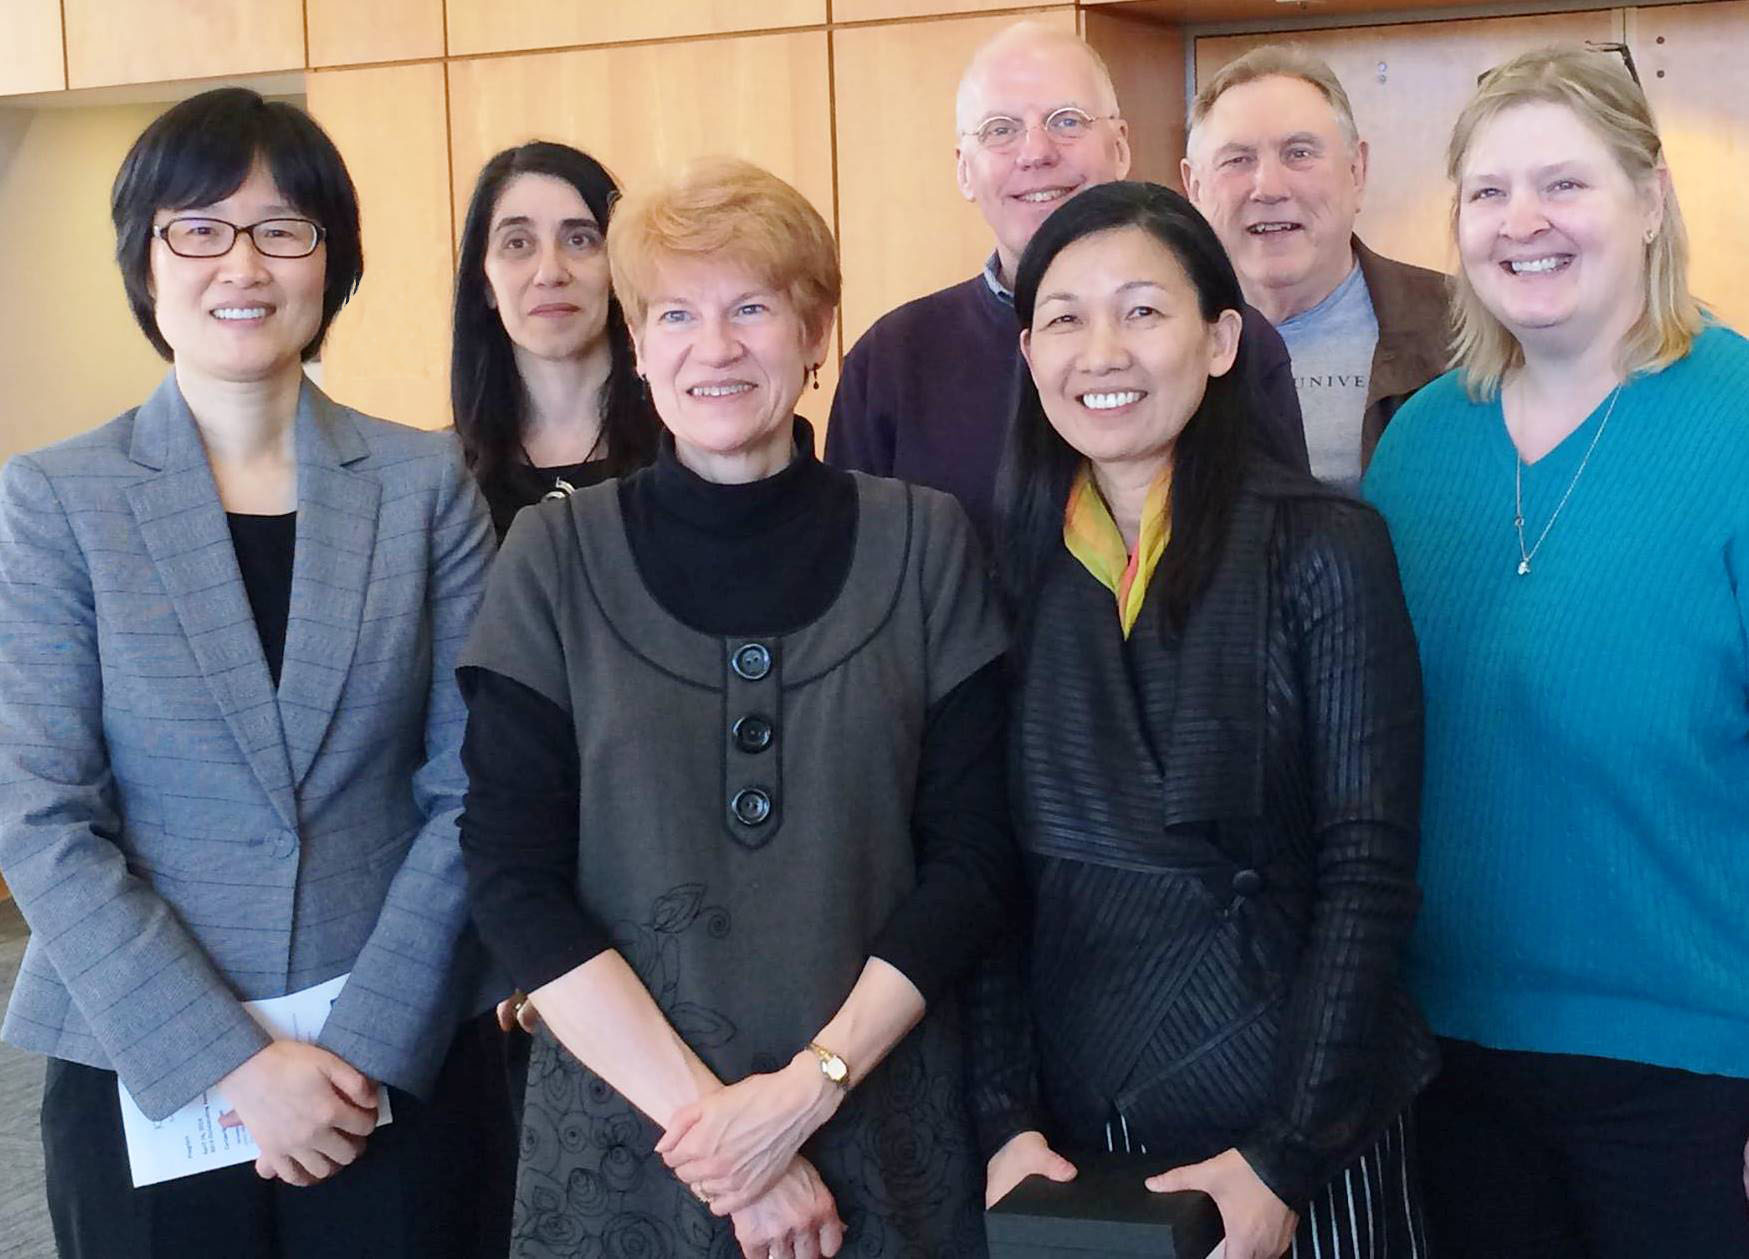 Professor Marcia Lei Zeng, Ph.D. (second from right), was honored by Kent State University for Outstanding Research and Scholarship.